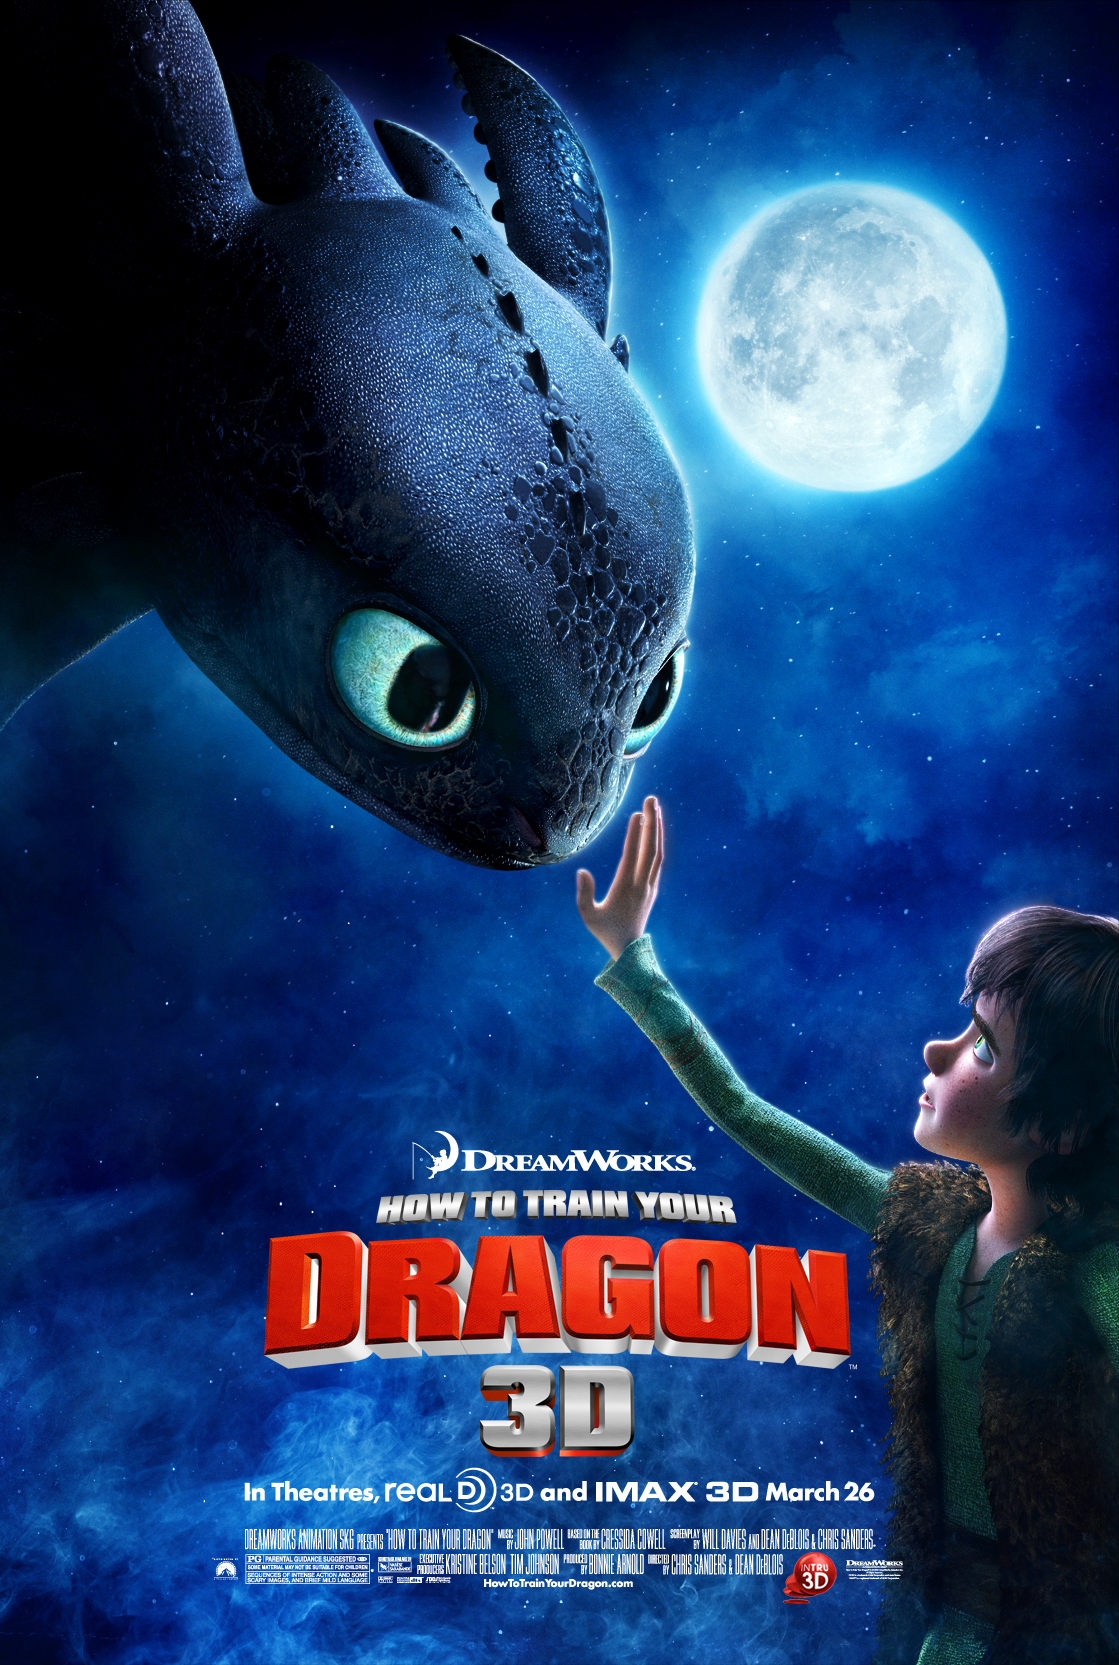 How to Train Your Dragon Tamil Dubbed TamilRockers